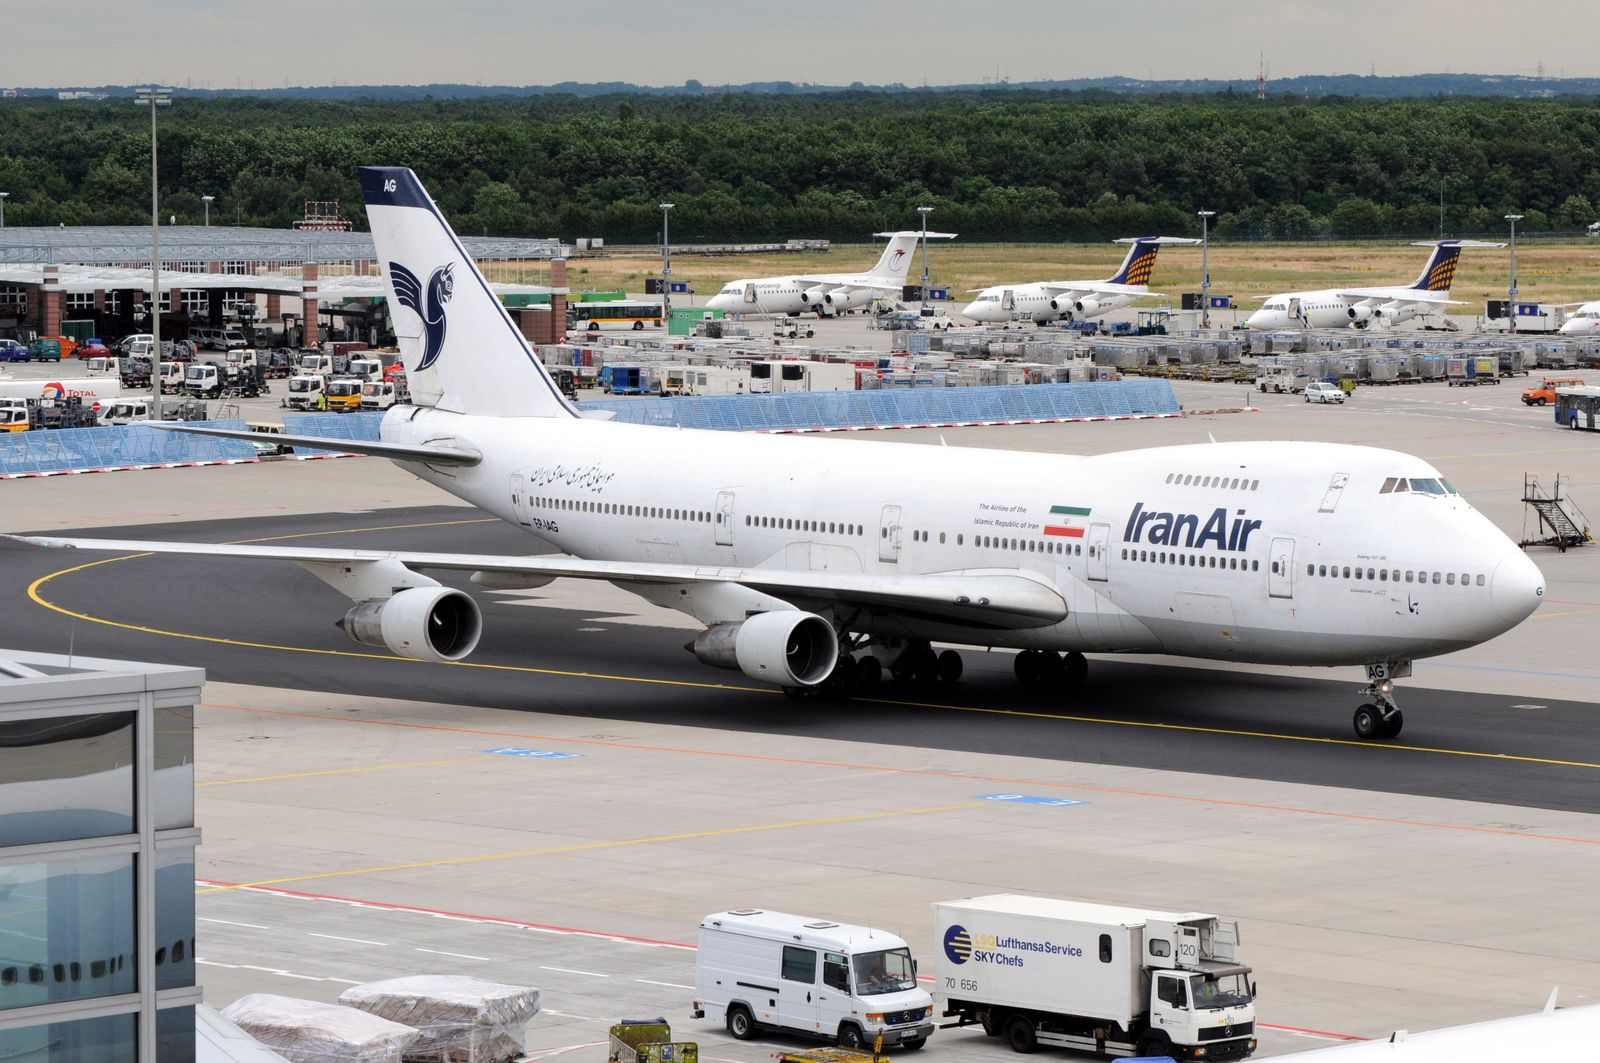 Iran Air cancels flights to Europe indefinitely as death toll of Coronavirus, COVID-19 rises, Frankfurt, Germany - 27 Jun 2008